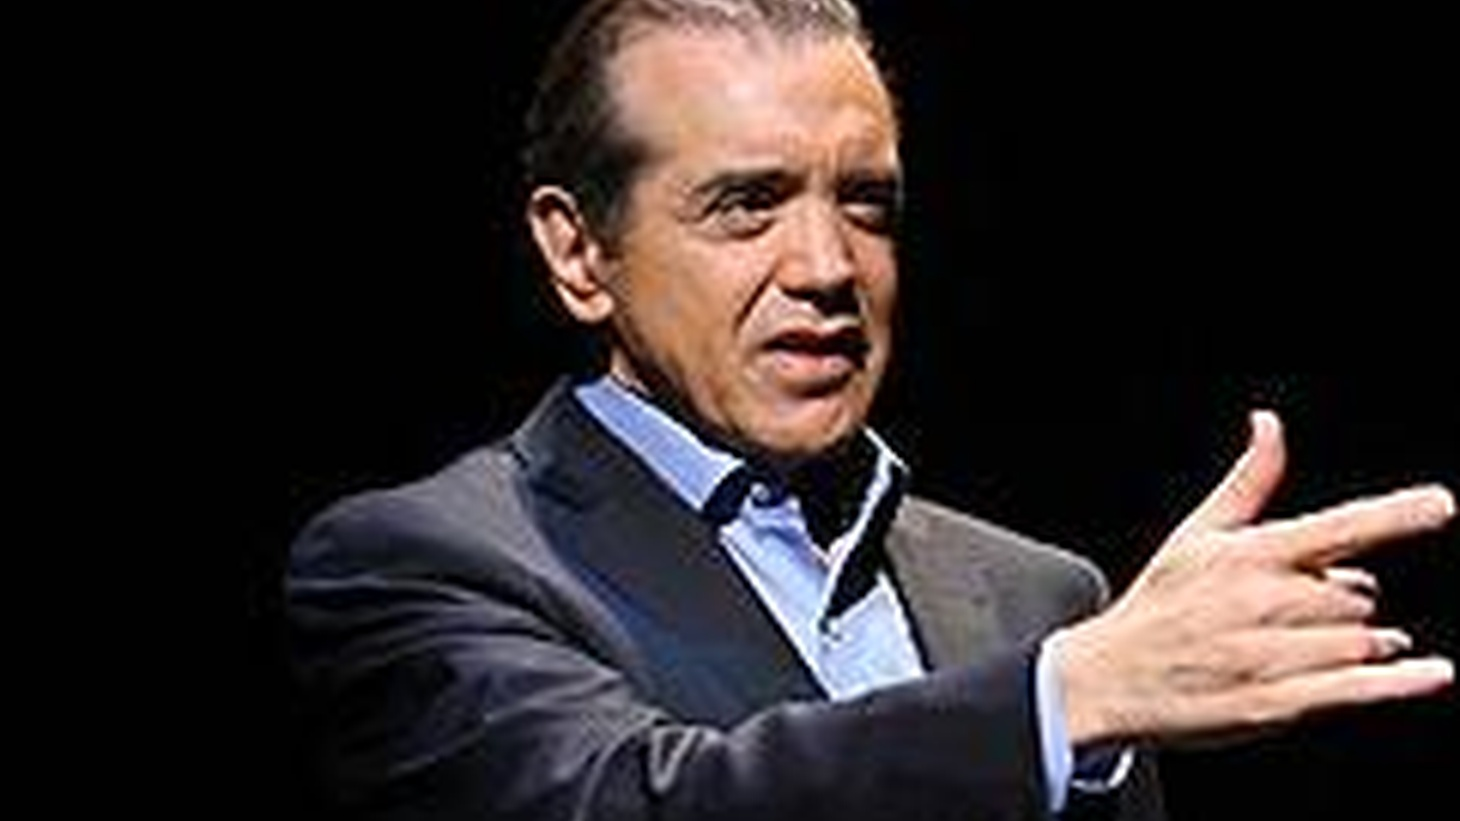 Rags-to-Riches stories are few and far between in the history of Los Angeles Theater. Survival is usually the most that an L.A. Theater artist can hope for—but there are exceptions. The tale of Chazz Palminteri is one of those rare exceptions and it's worth retelling...